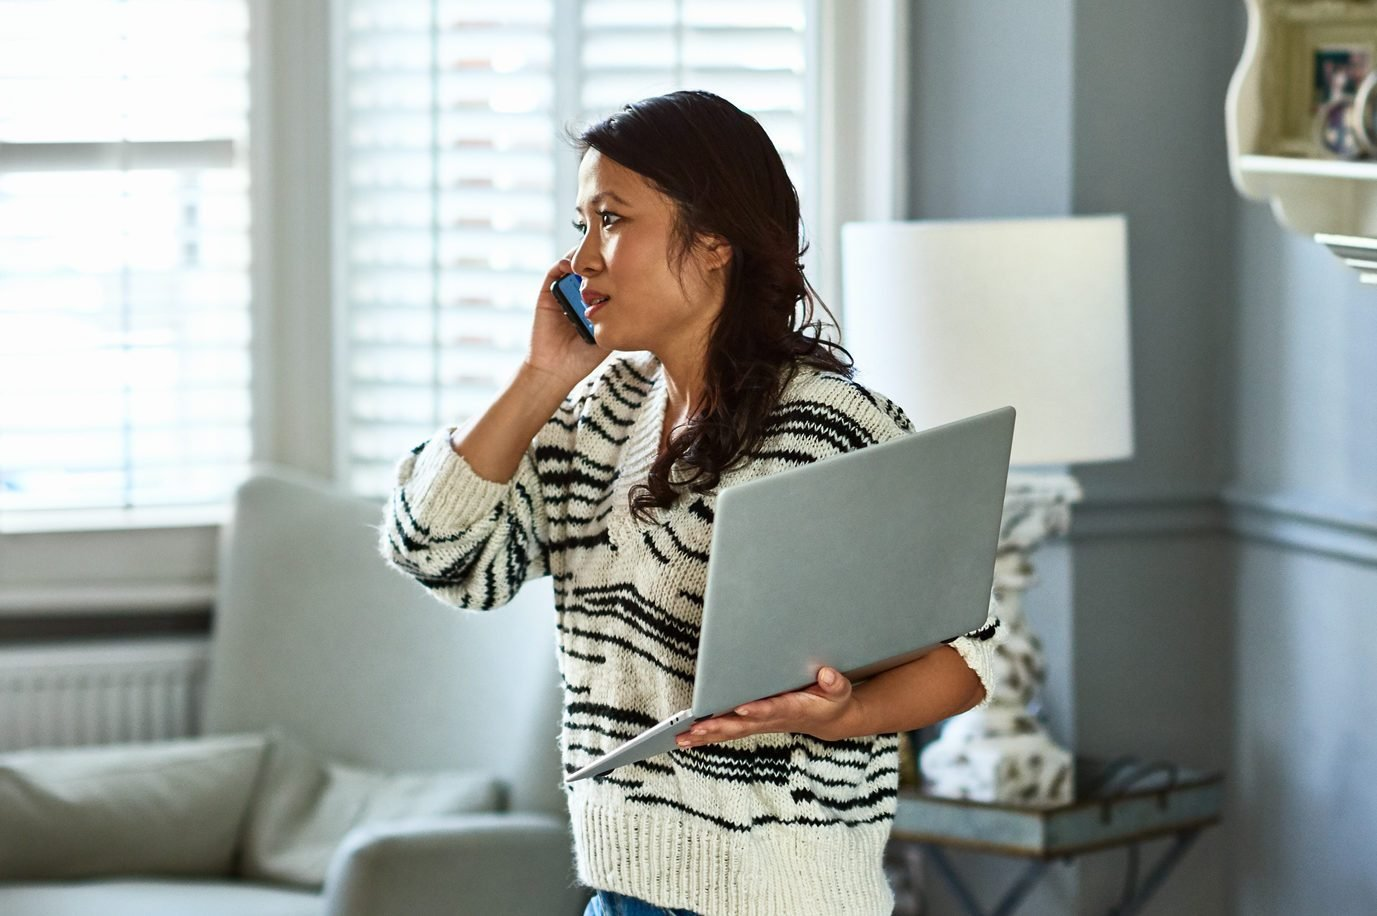 Woman holding laptop and listening on smartphone